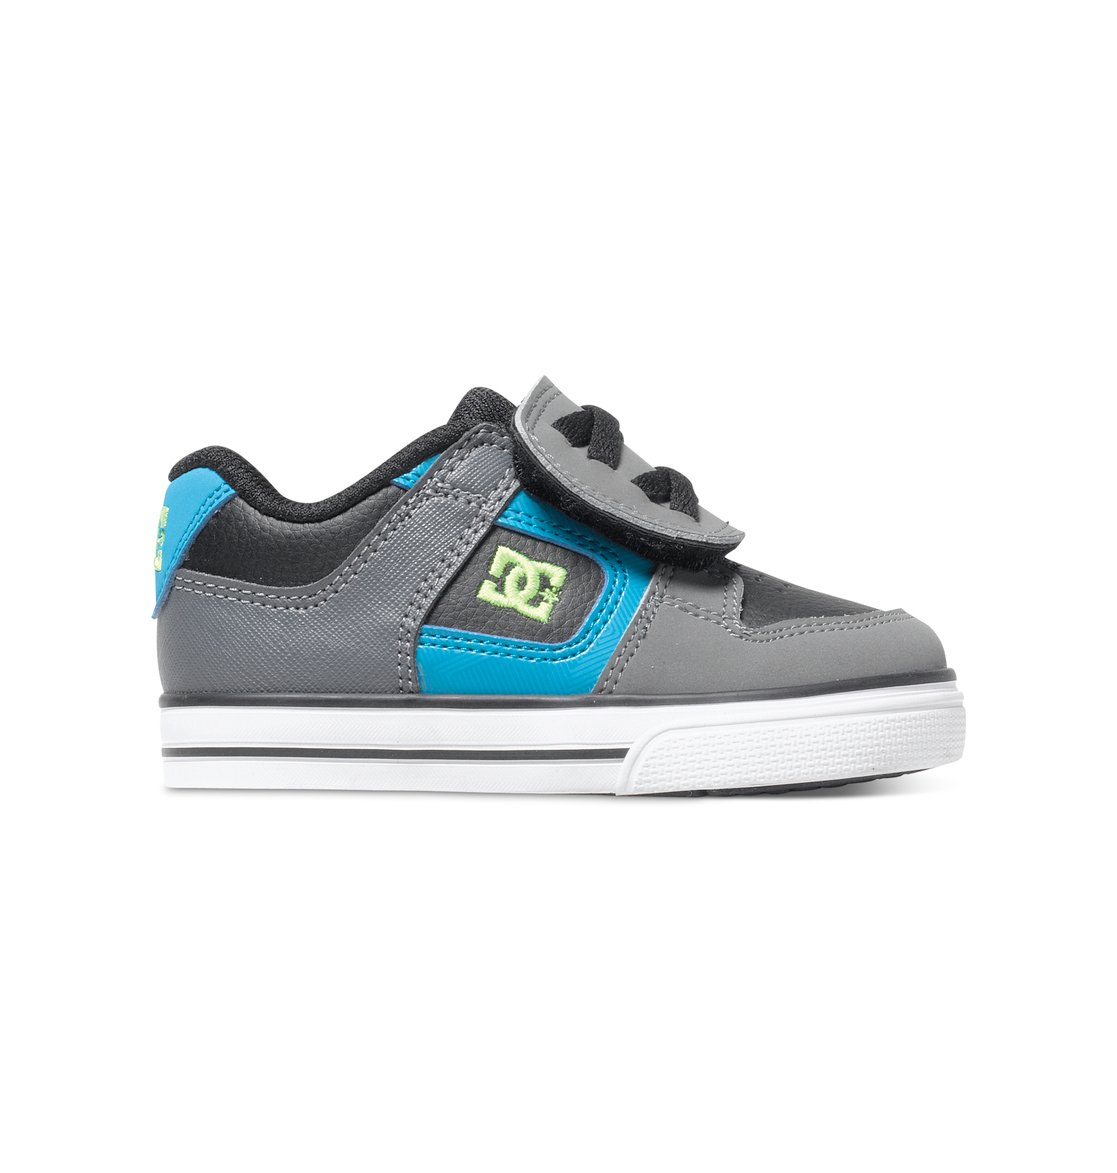 Pure V - Dcshoes������ ���� Pure V ��� ��������� �� DC Shoes. <br>��������������: ������� ��� � �������������� ���������, ������� ���� � ������� � ������ ������������, ��������-������� � ��������� � ������������ ���������������� ���������, ����������������� �����������, ������������� ���������� �������, ��������� ������� ���������� ������� DC Pill Pattern. <br>������: ����: ���� / ���������: �������� / �������: ������.<br>